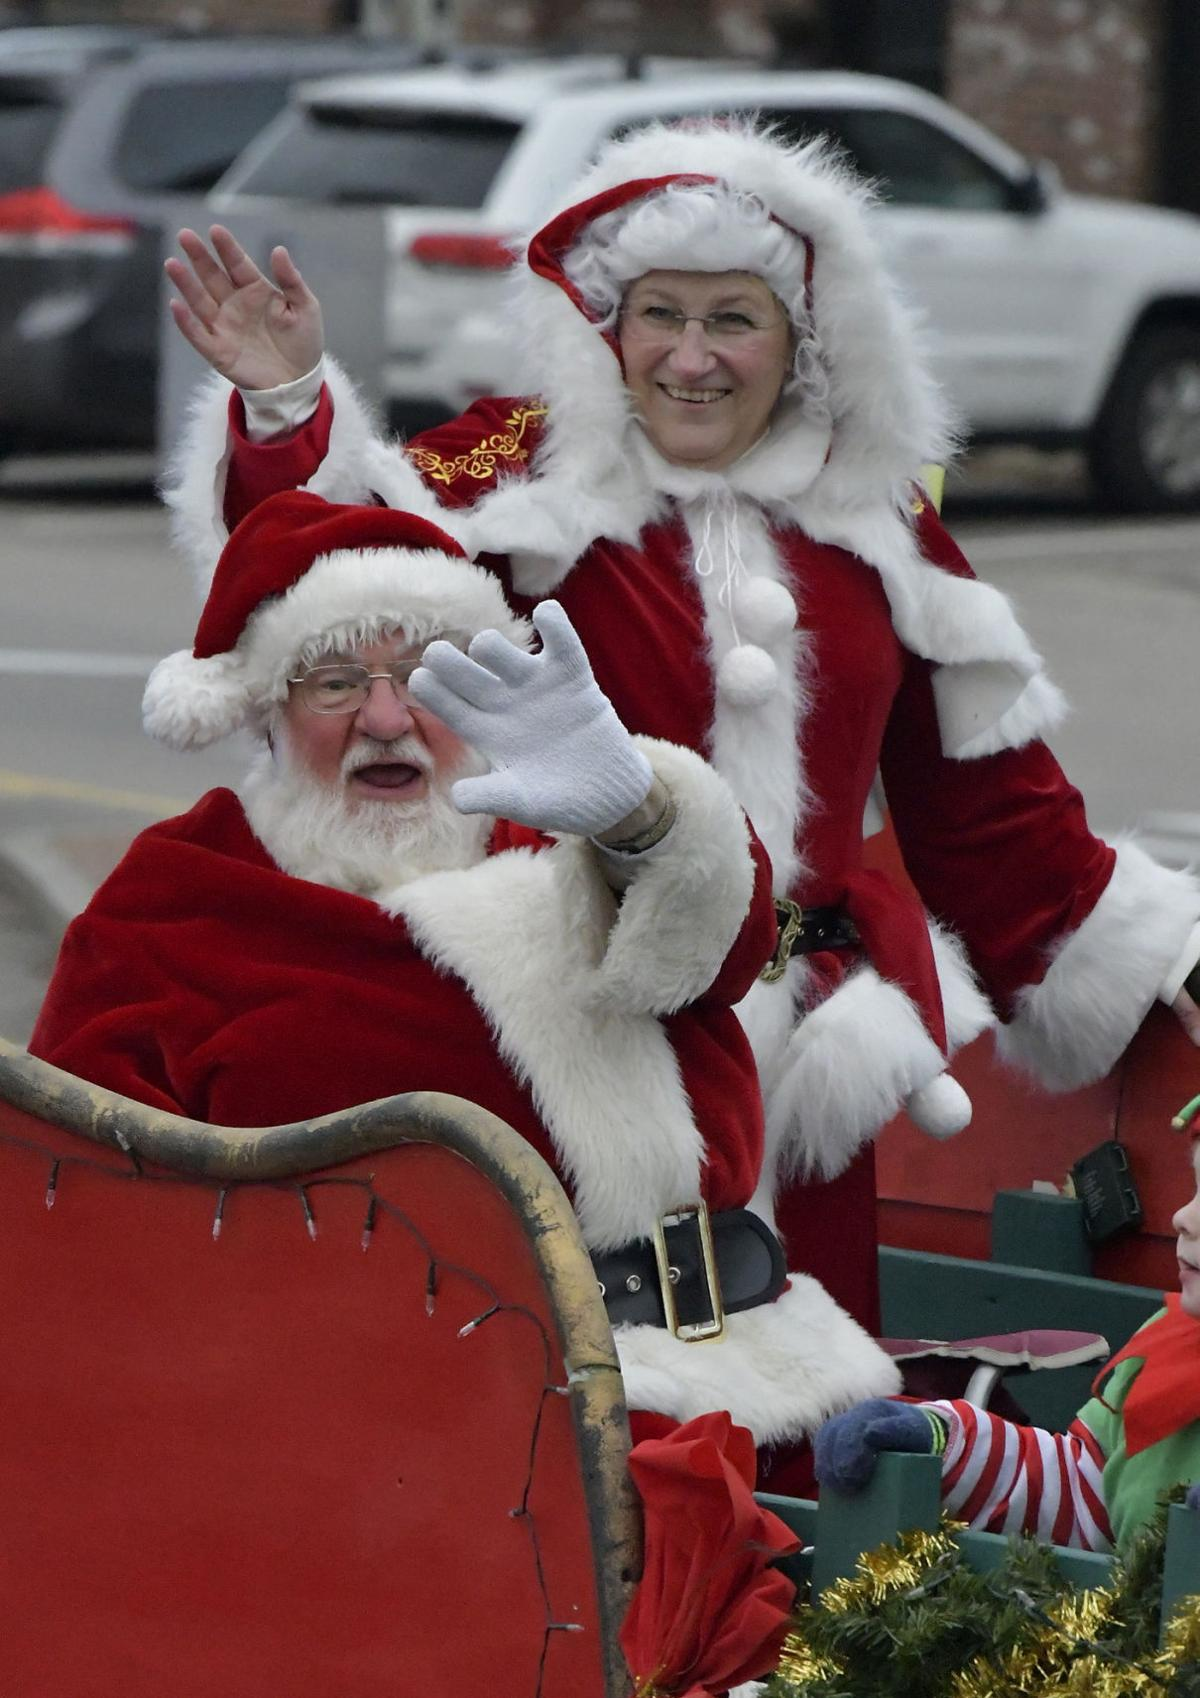 Norfolk welcomes the season with a parade | Local News ...